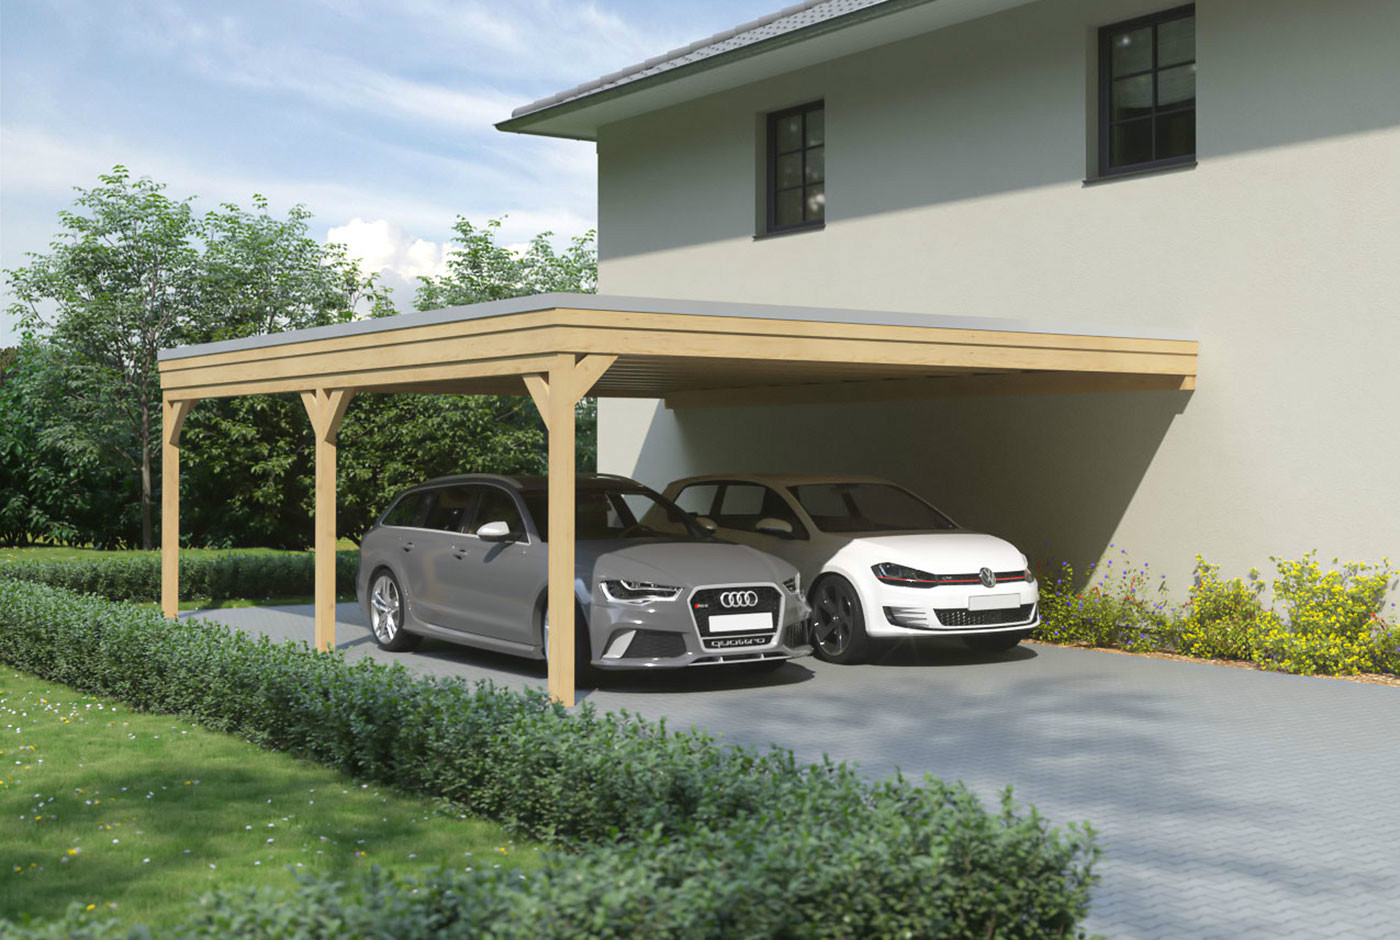 bausatz fr carport beautiful bausatz herrlich carport mit satteldach referenzen fr carports von. Black Bedroom Furniture Sets. Home Design Ideas